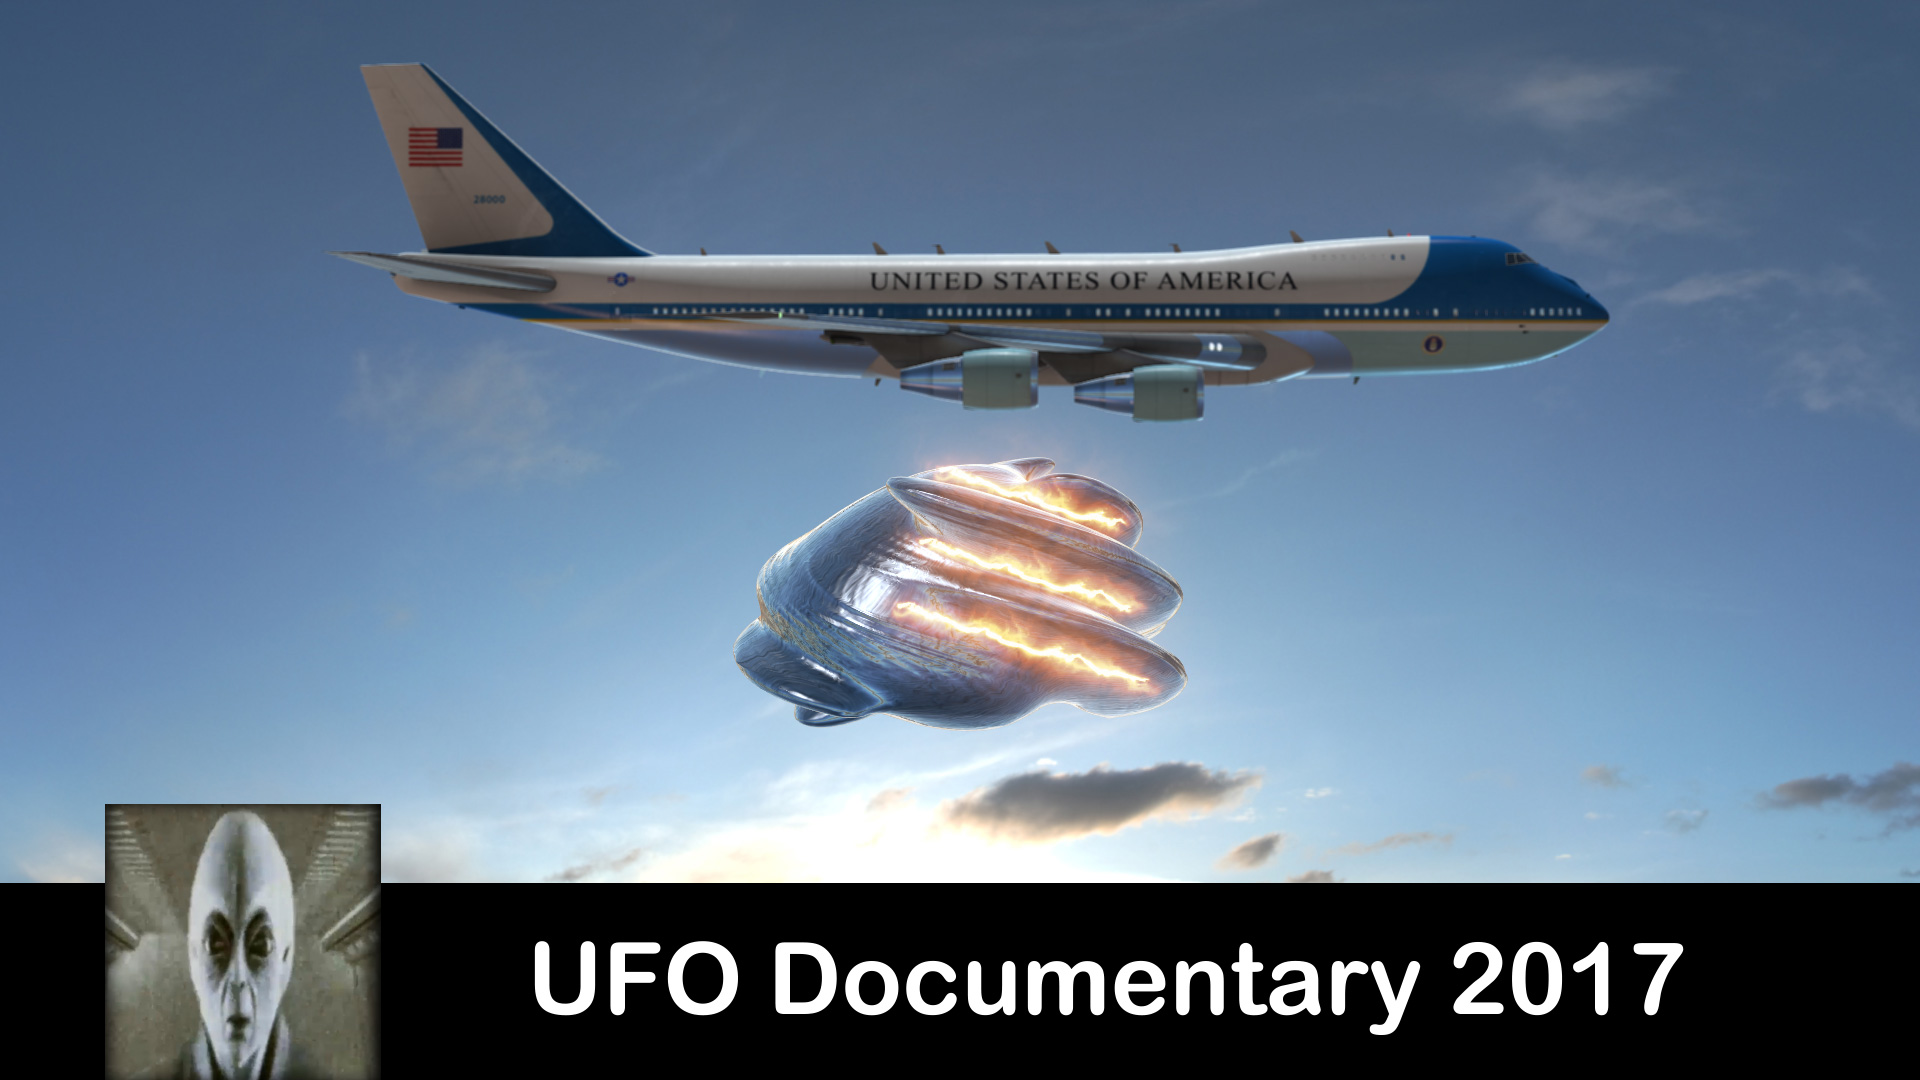 UFO Documentary July 23rd 2017